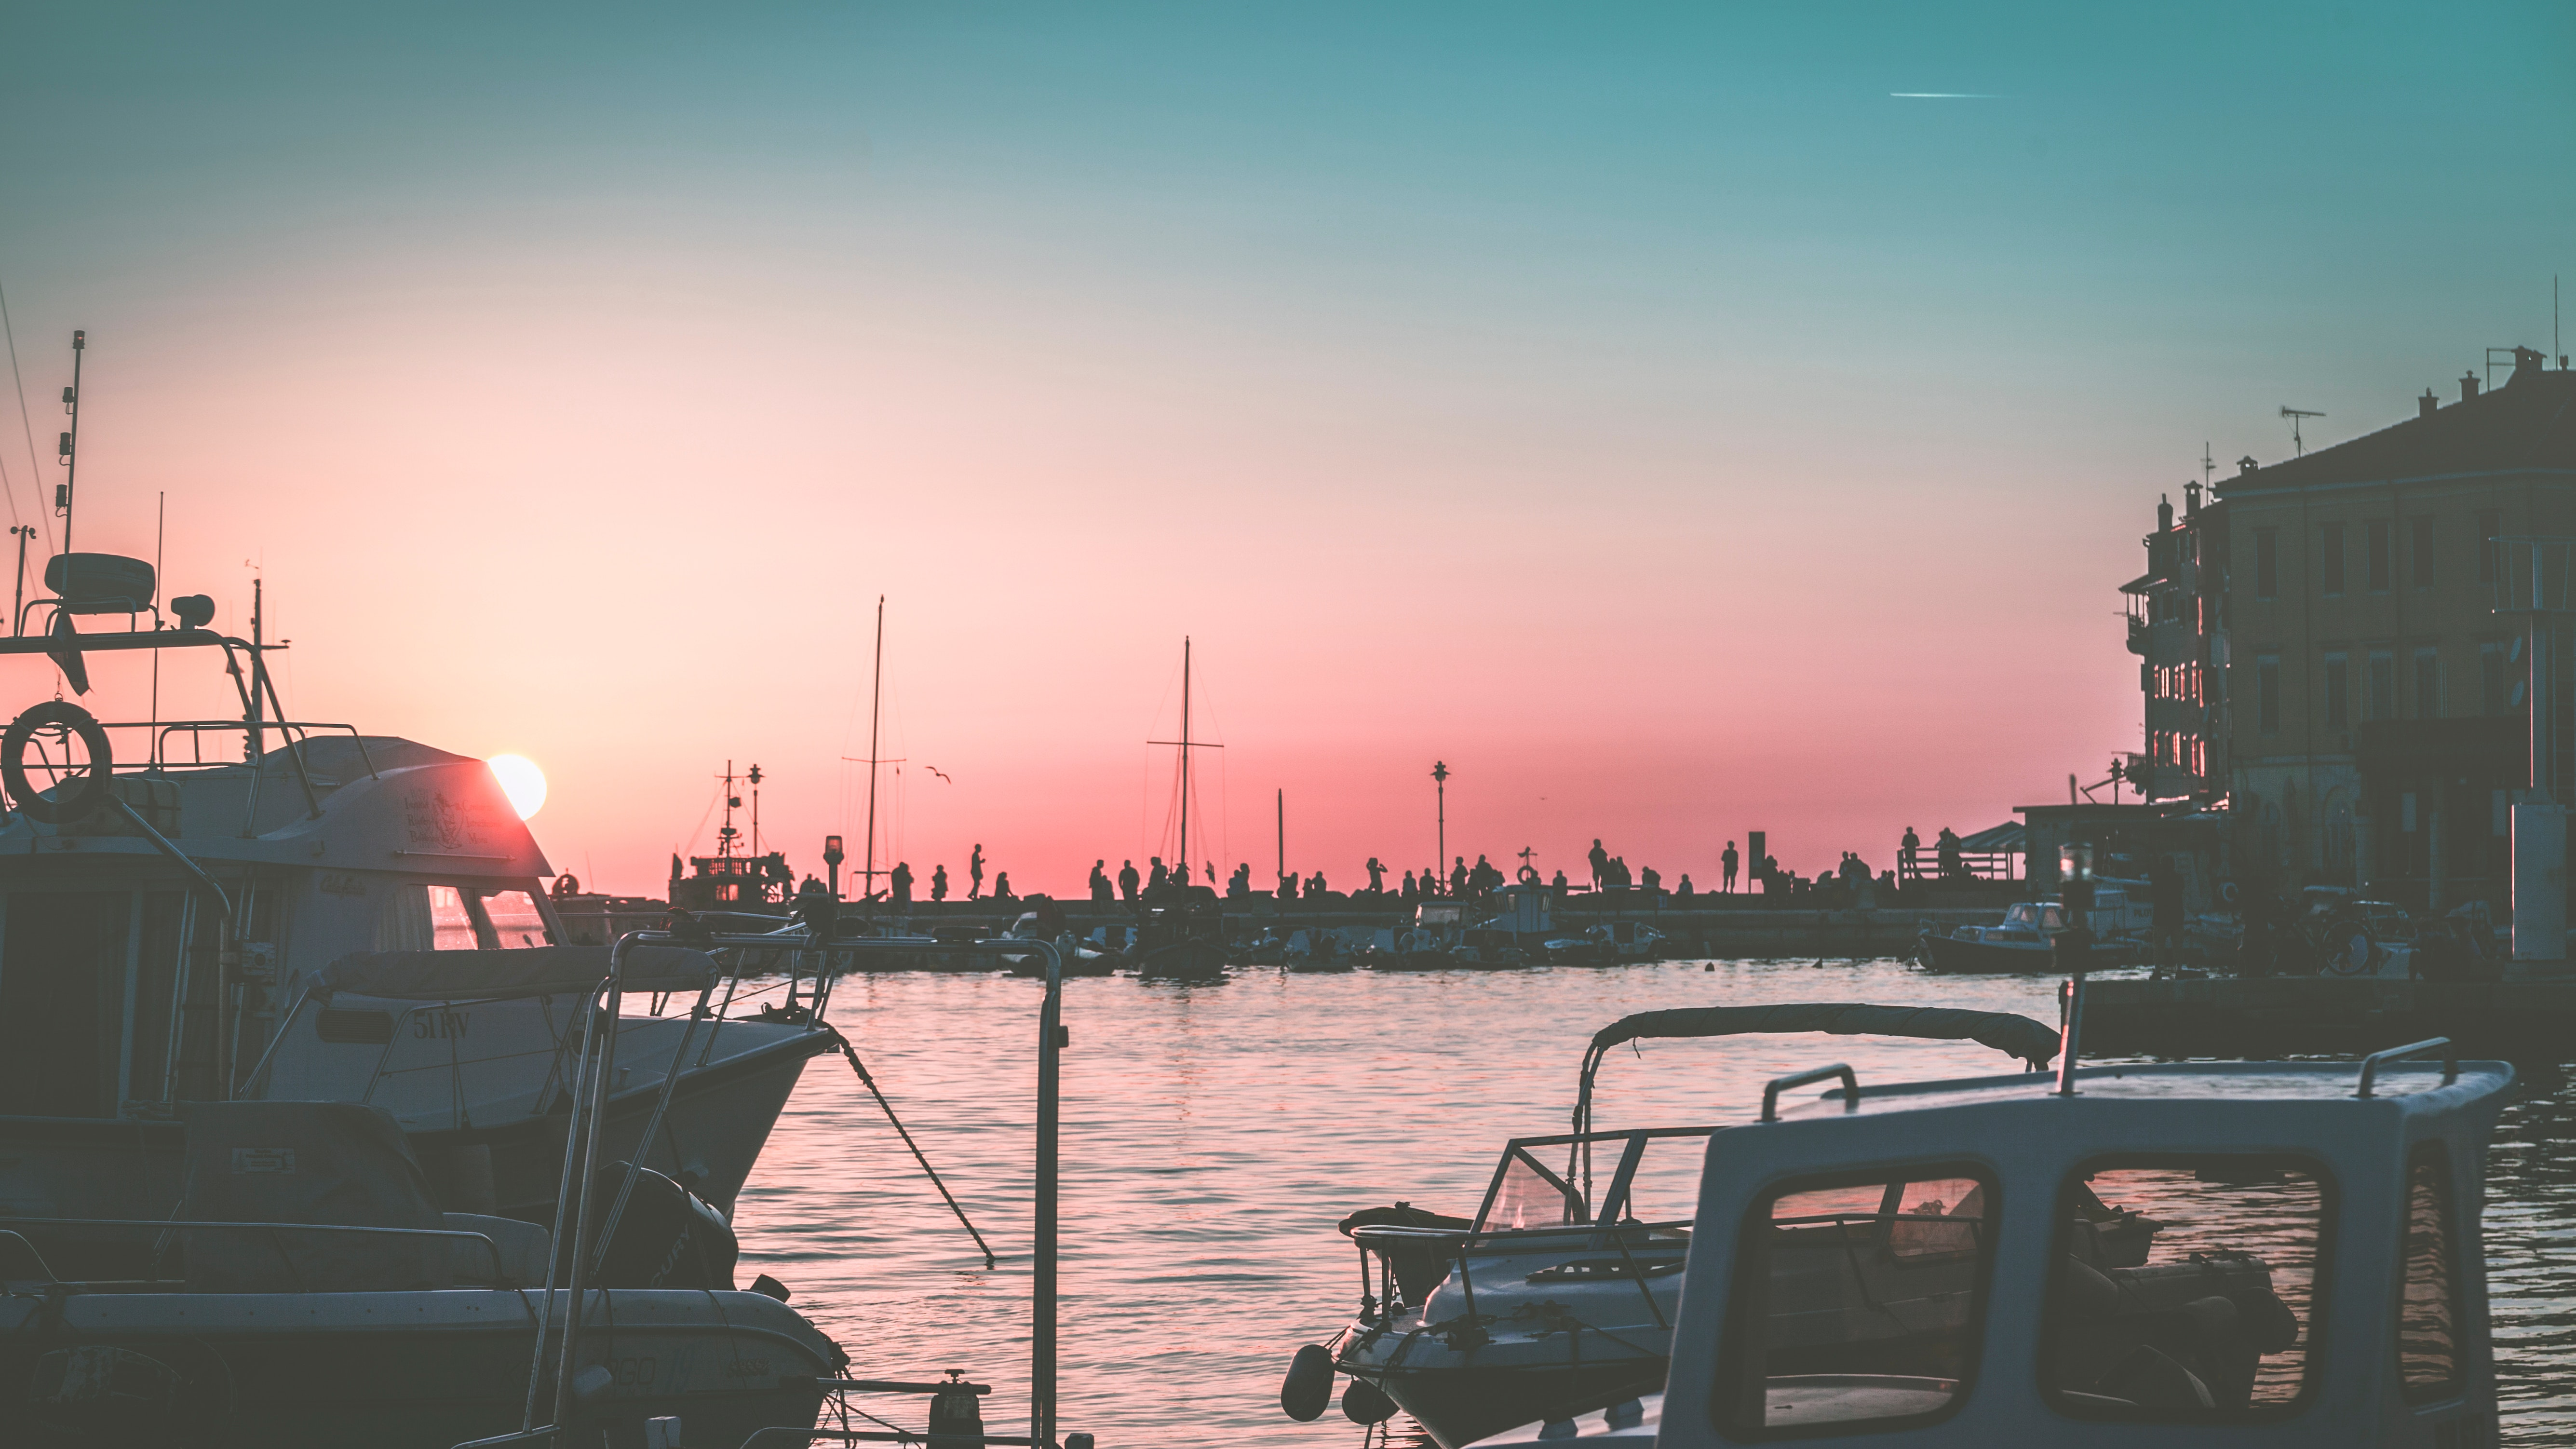 White yacht on body of water during sunset photo